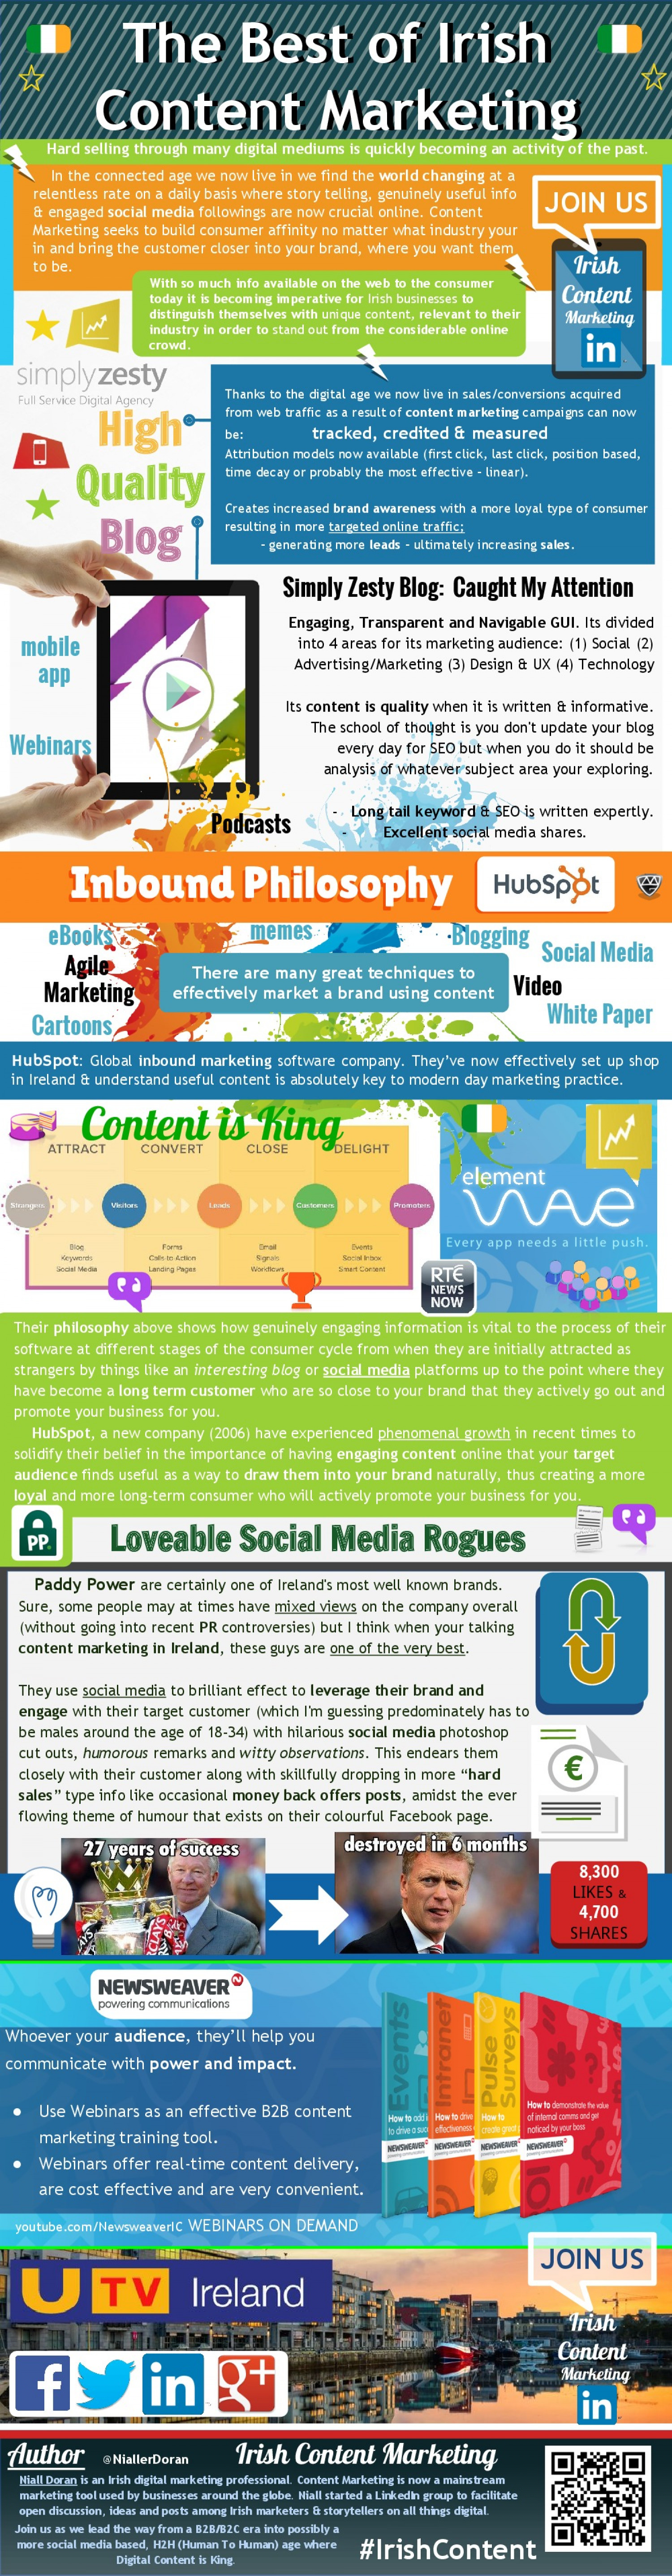 The Best of Irish Content Marketing Infographic